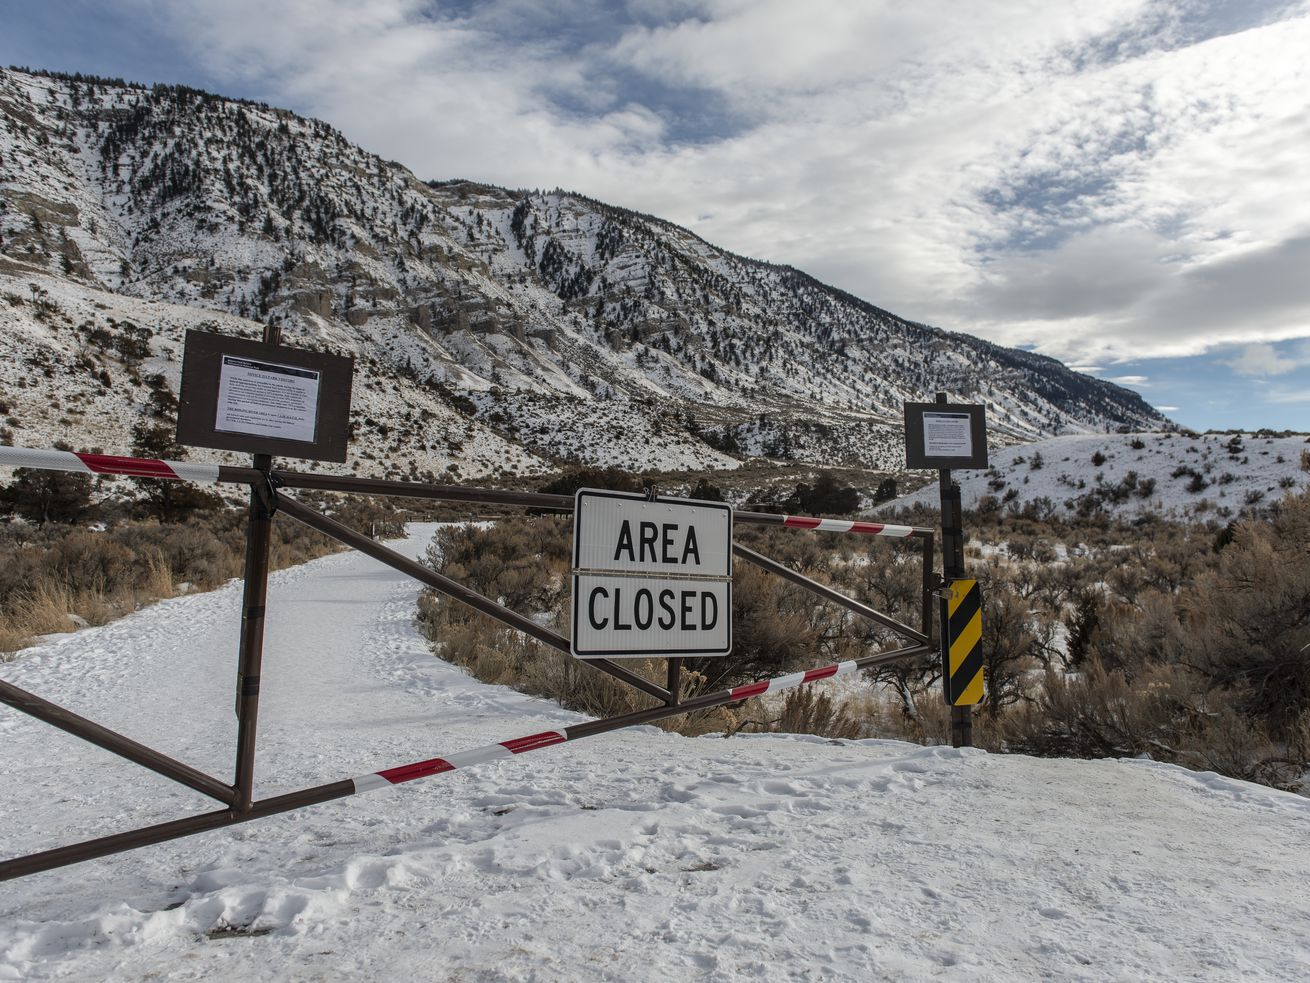 The parking lot at Boiling River is closed on January 3, 2019 in Yellowstone National Park, Wyoming. While visitors can still access the river, many services in Yellowstone National Park have been suspended during the government shutdown.